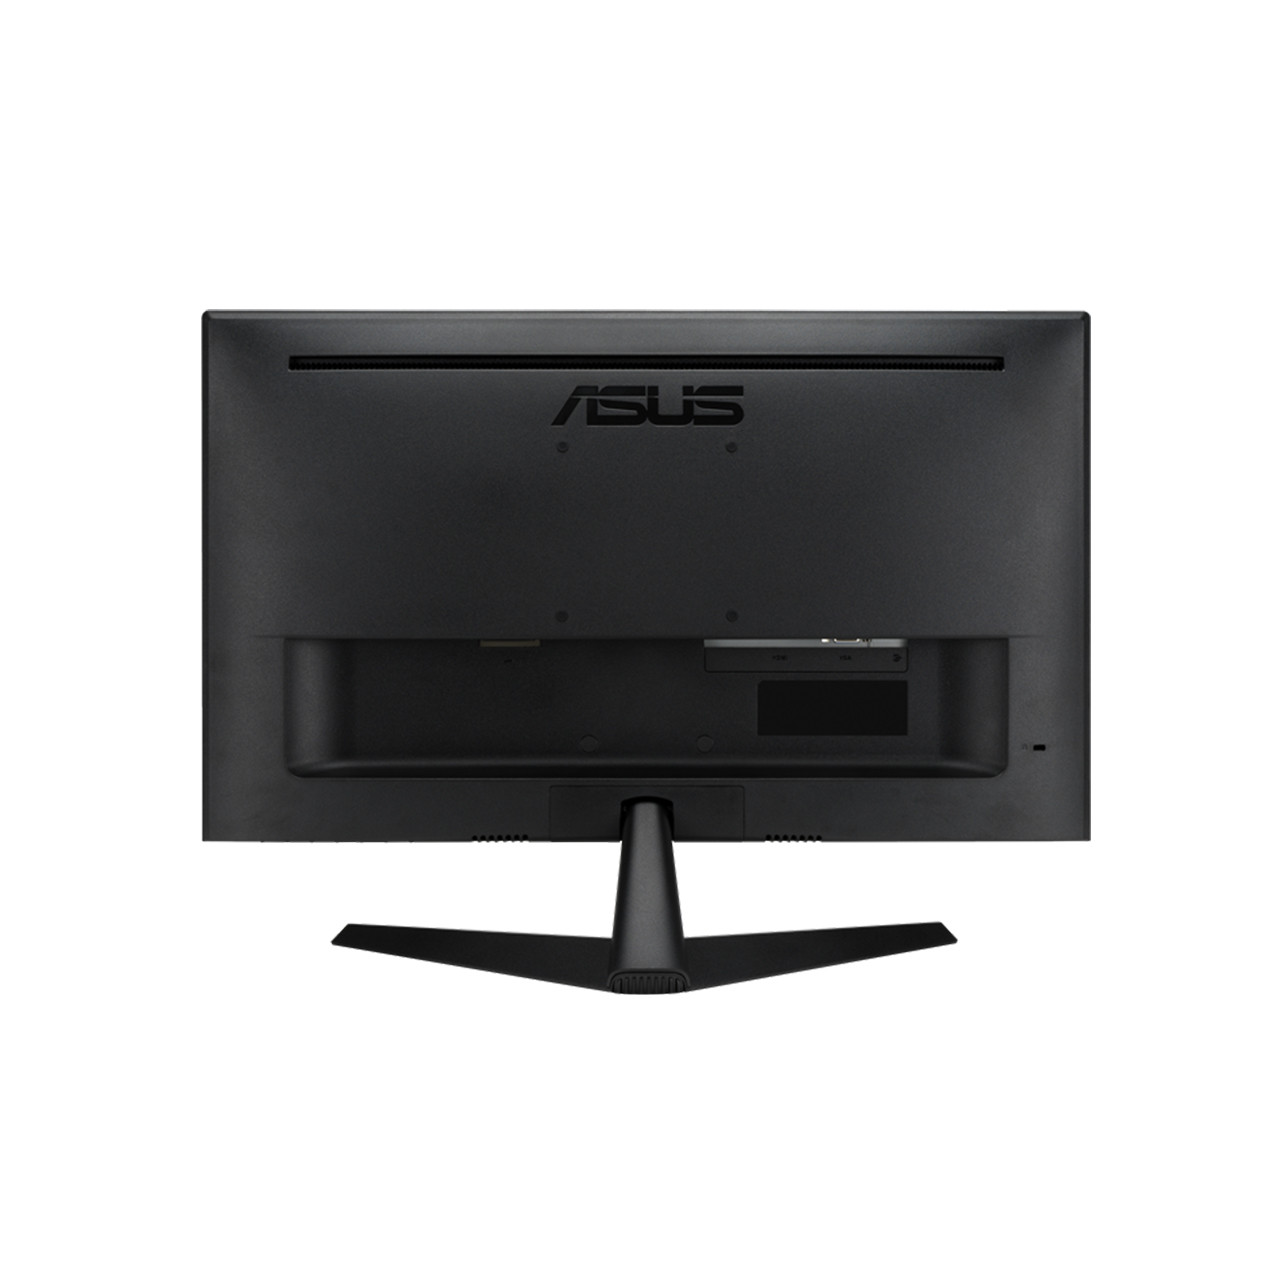 ASUS-VY249HE